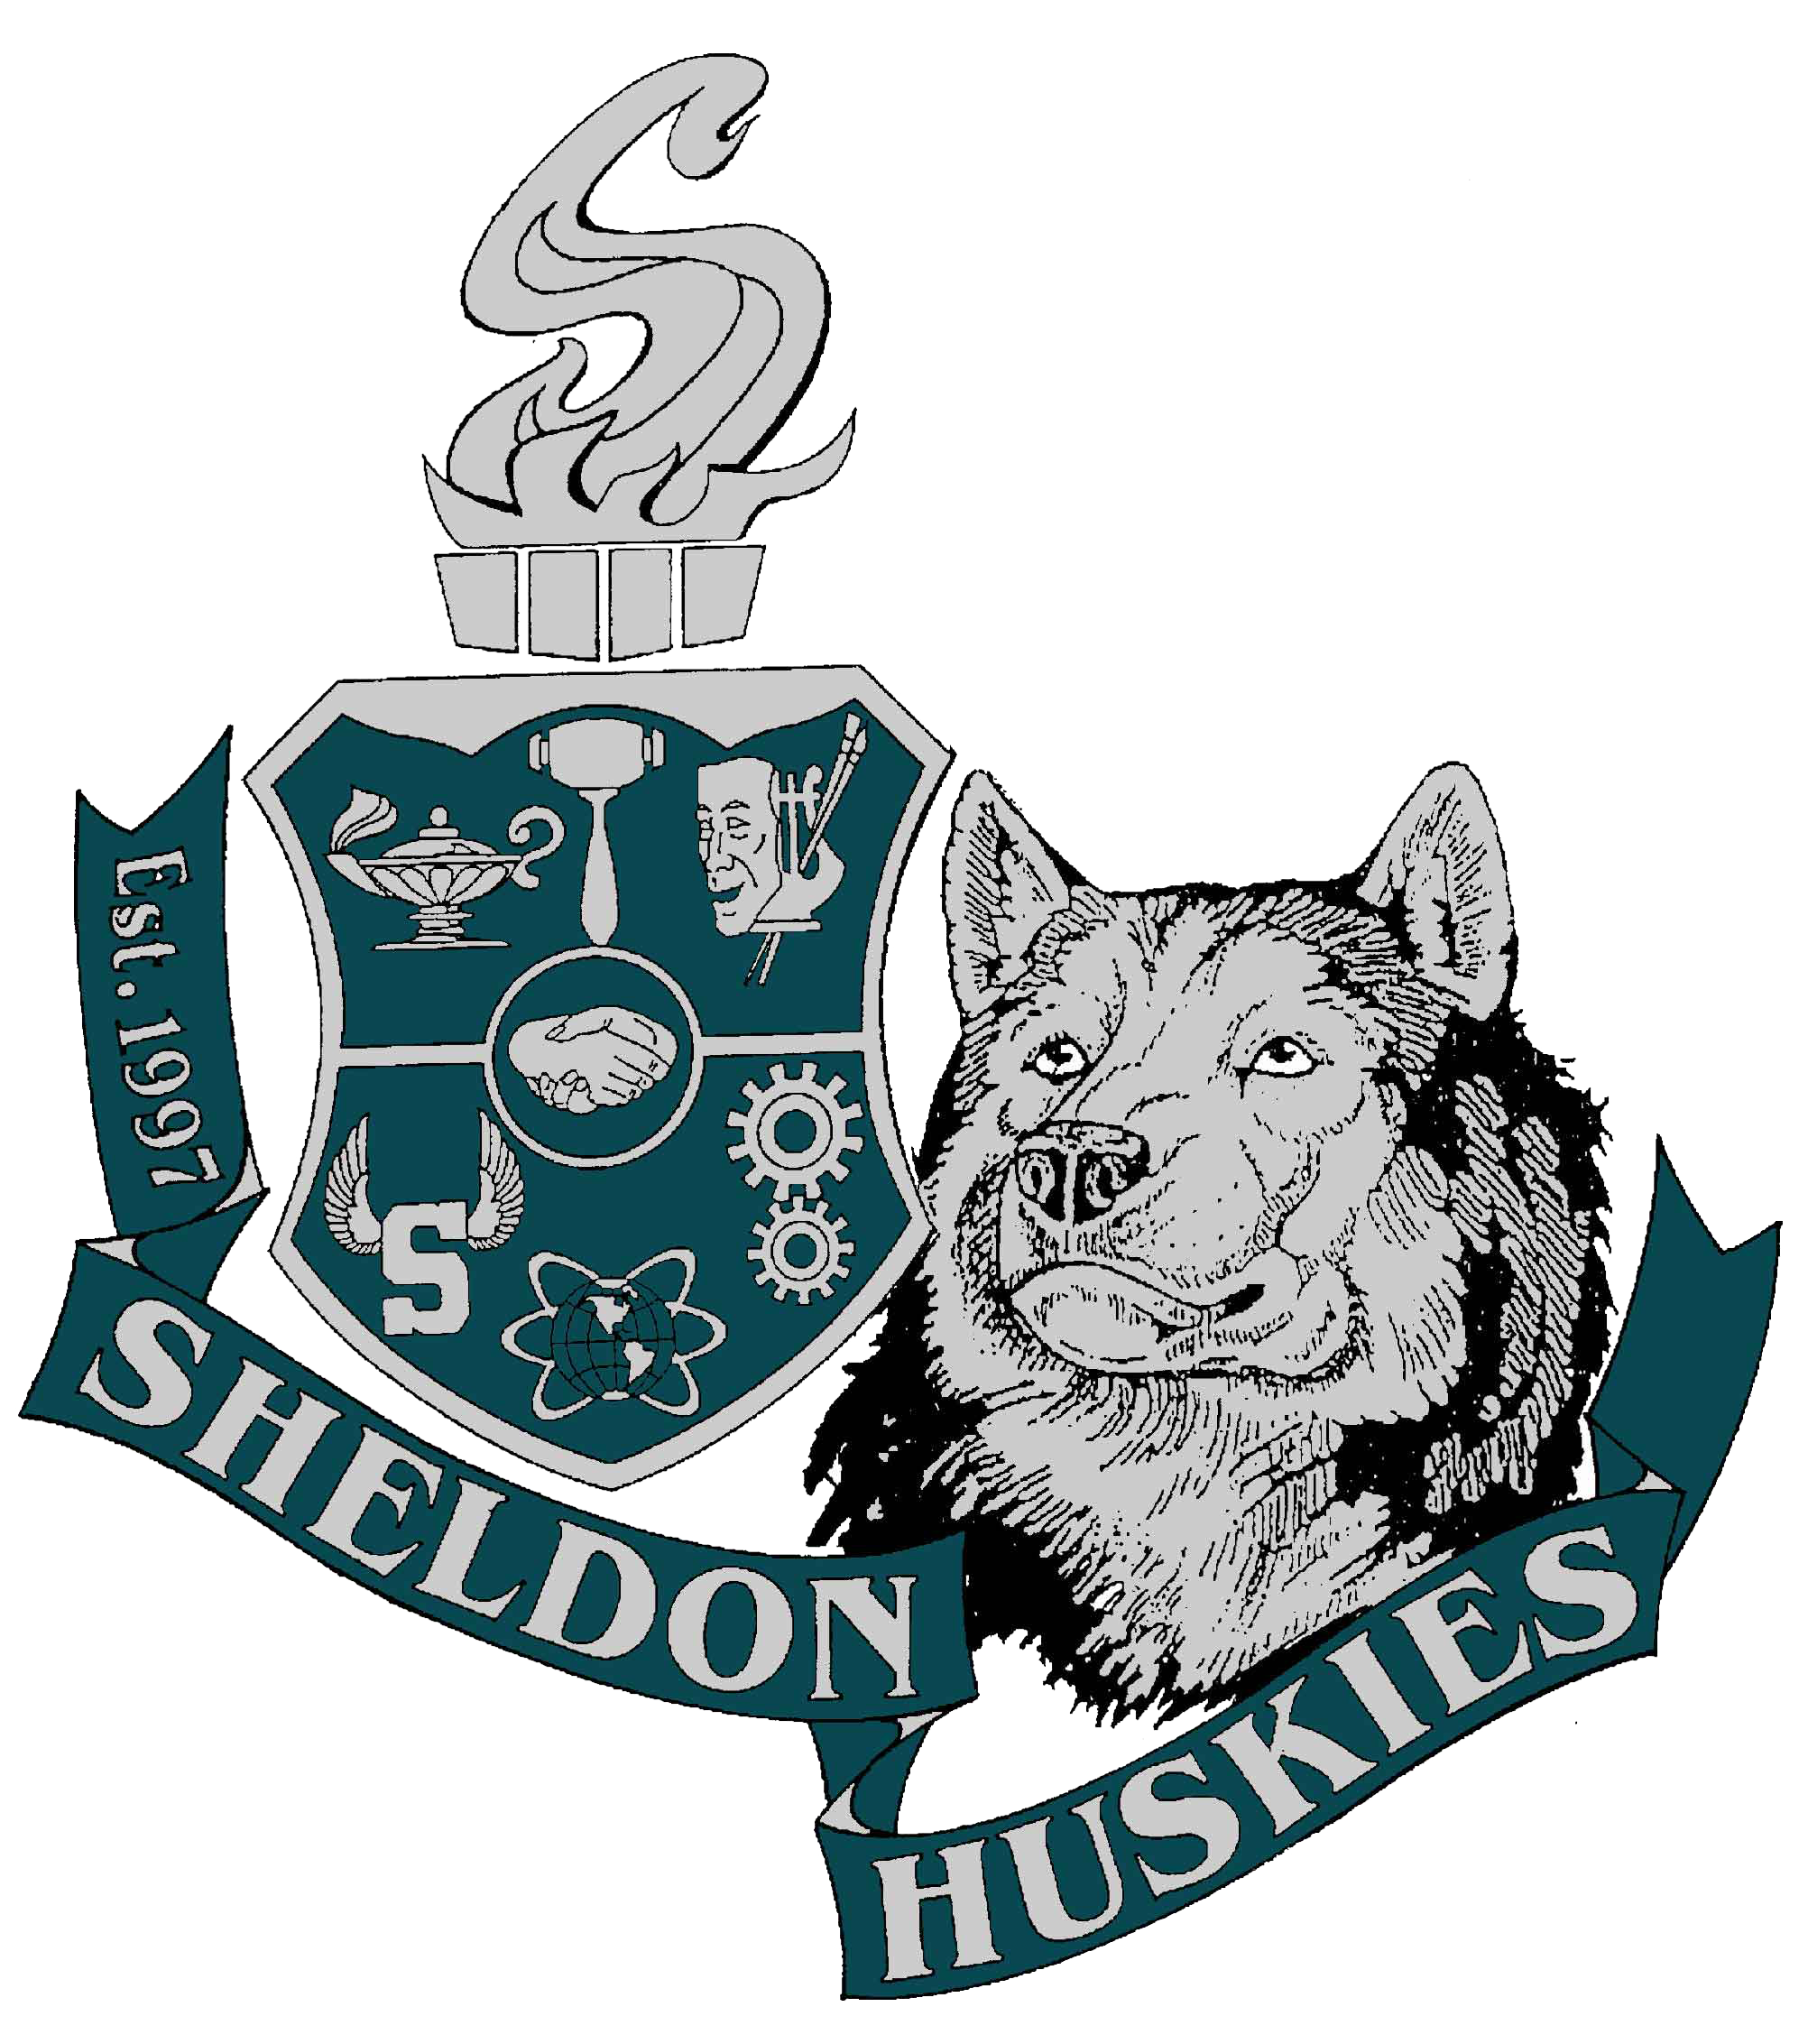 Sheldon High School logo